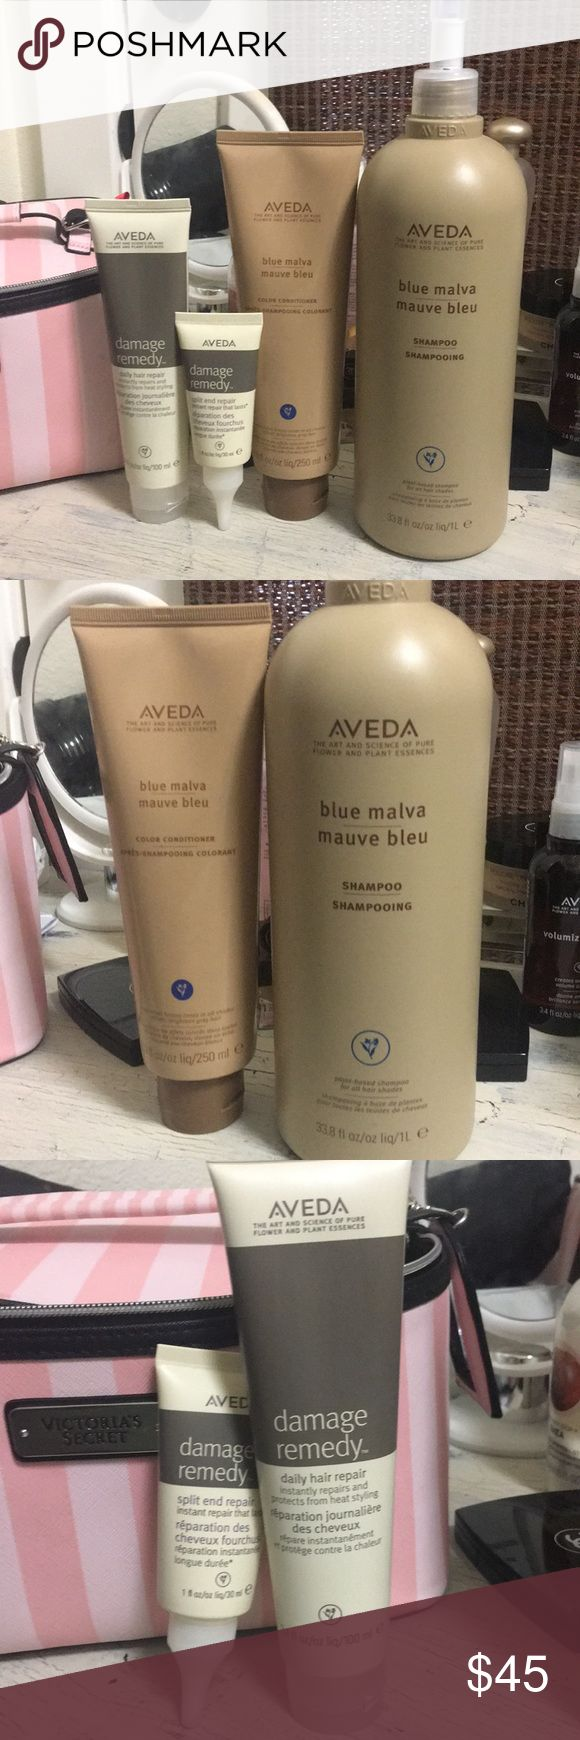 Aveda hair products 4 piece bundle Aveda blue malva shampoo large size full,blue malva conditioner small size8.5oz damage remedy set (all 4 piece)all new and full. aveda Other